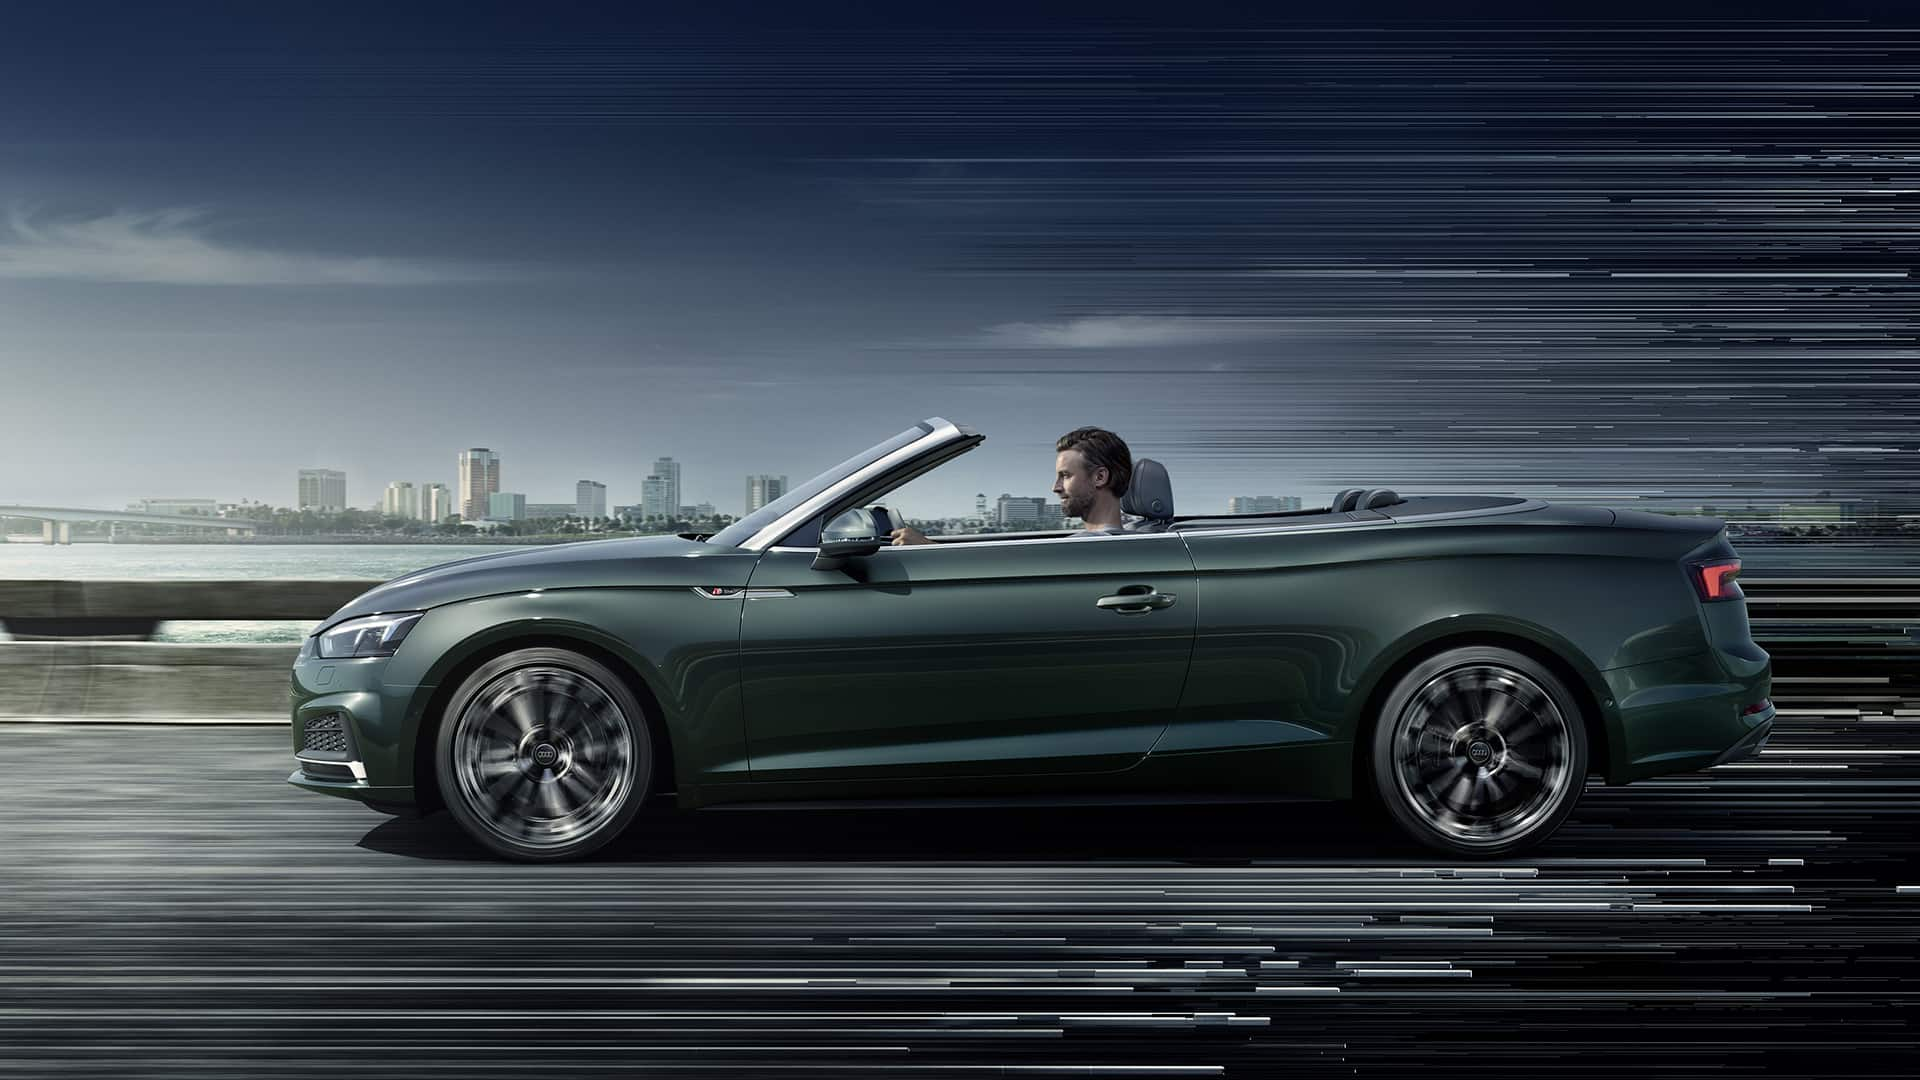 cabriolet audi which td the review of course ideal is used alternative an convertible lsf